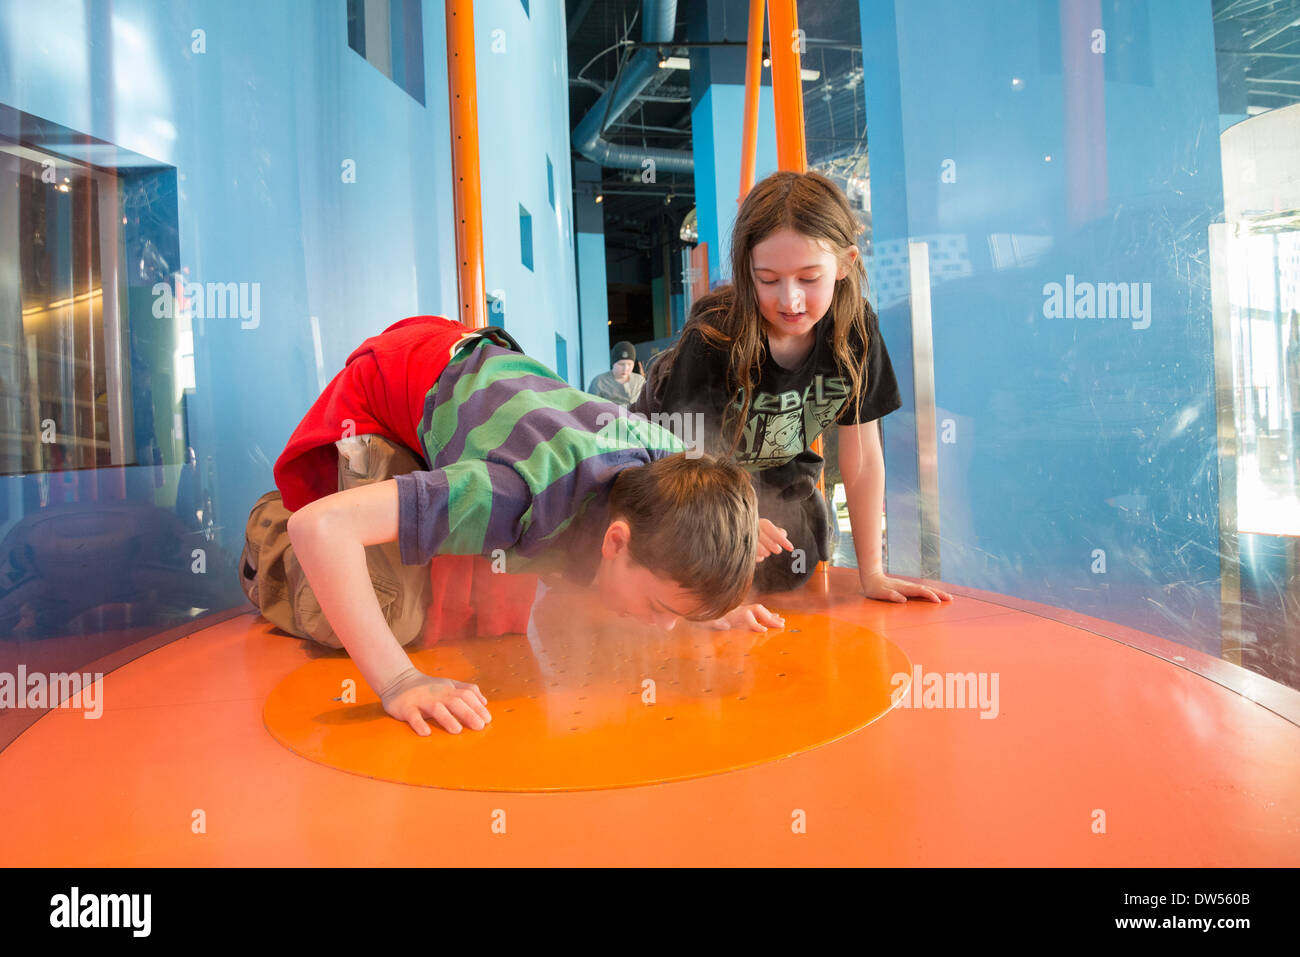 Boys interacting with air flow exhibit at Telus, World of Science, Vancouver, British Columbia, Canada - Stock Image